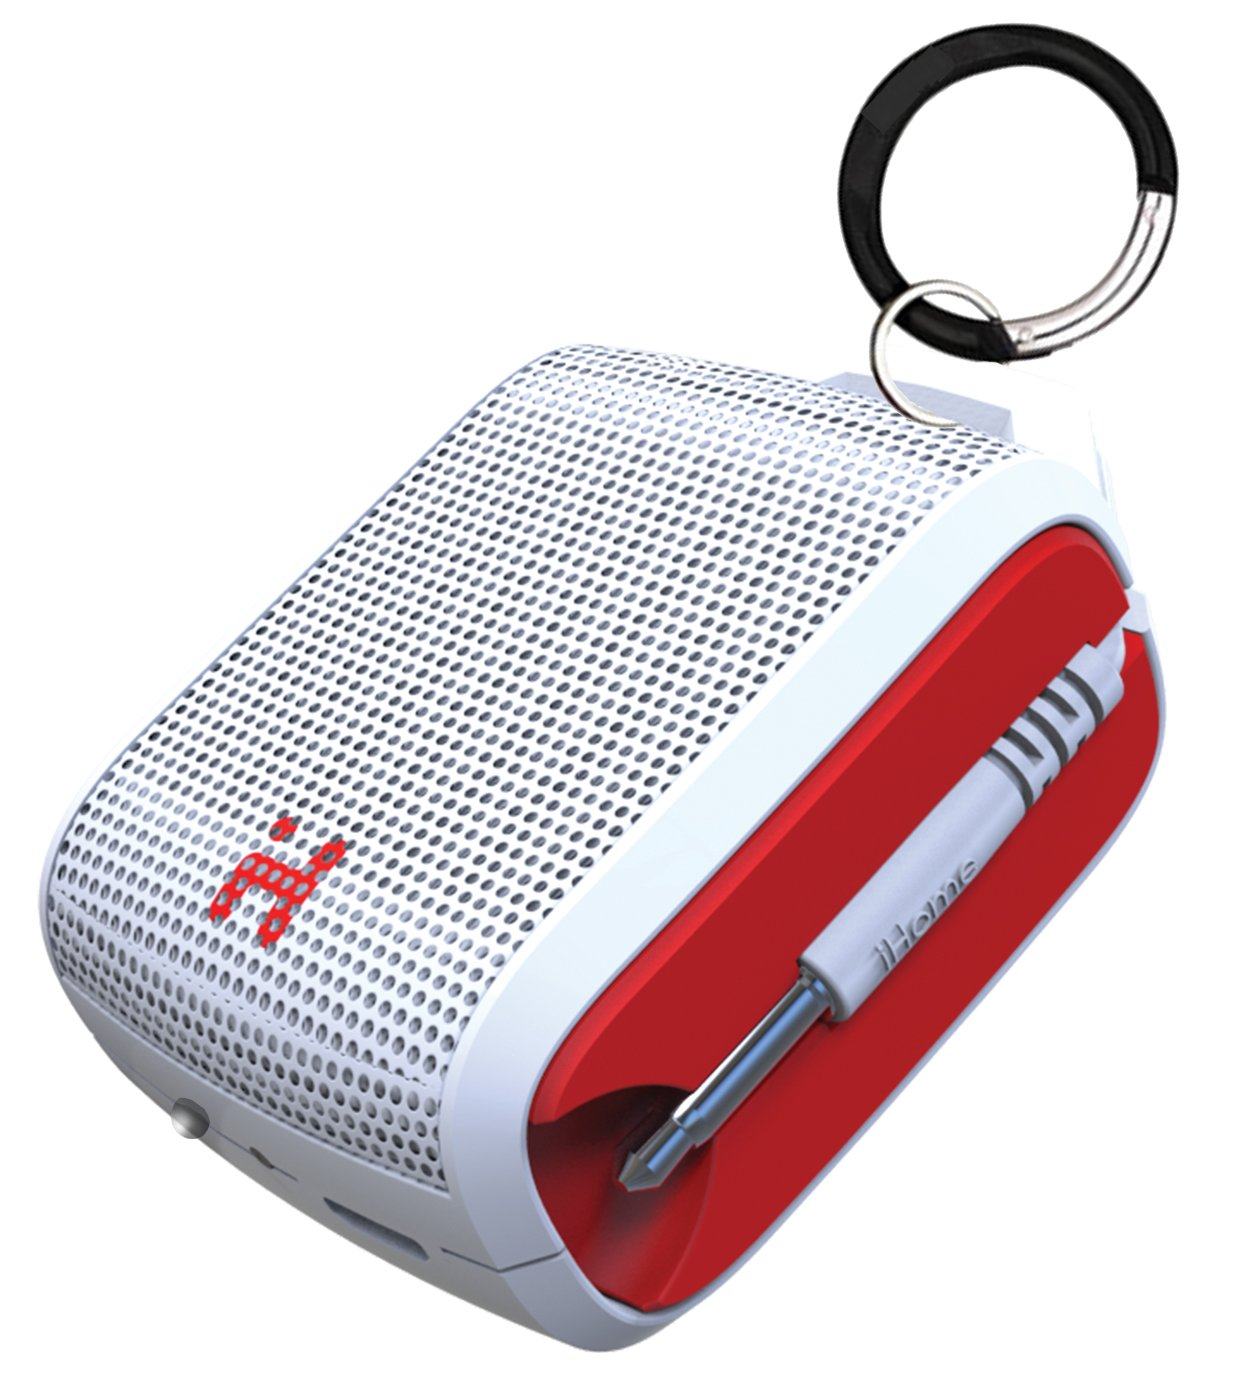 iHome iM54WRC Rechargeable Mini Speaker(White/Red) by iHome